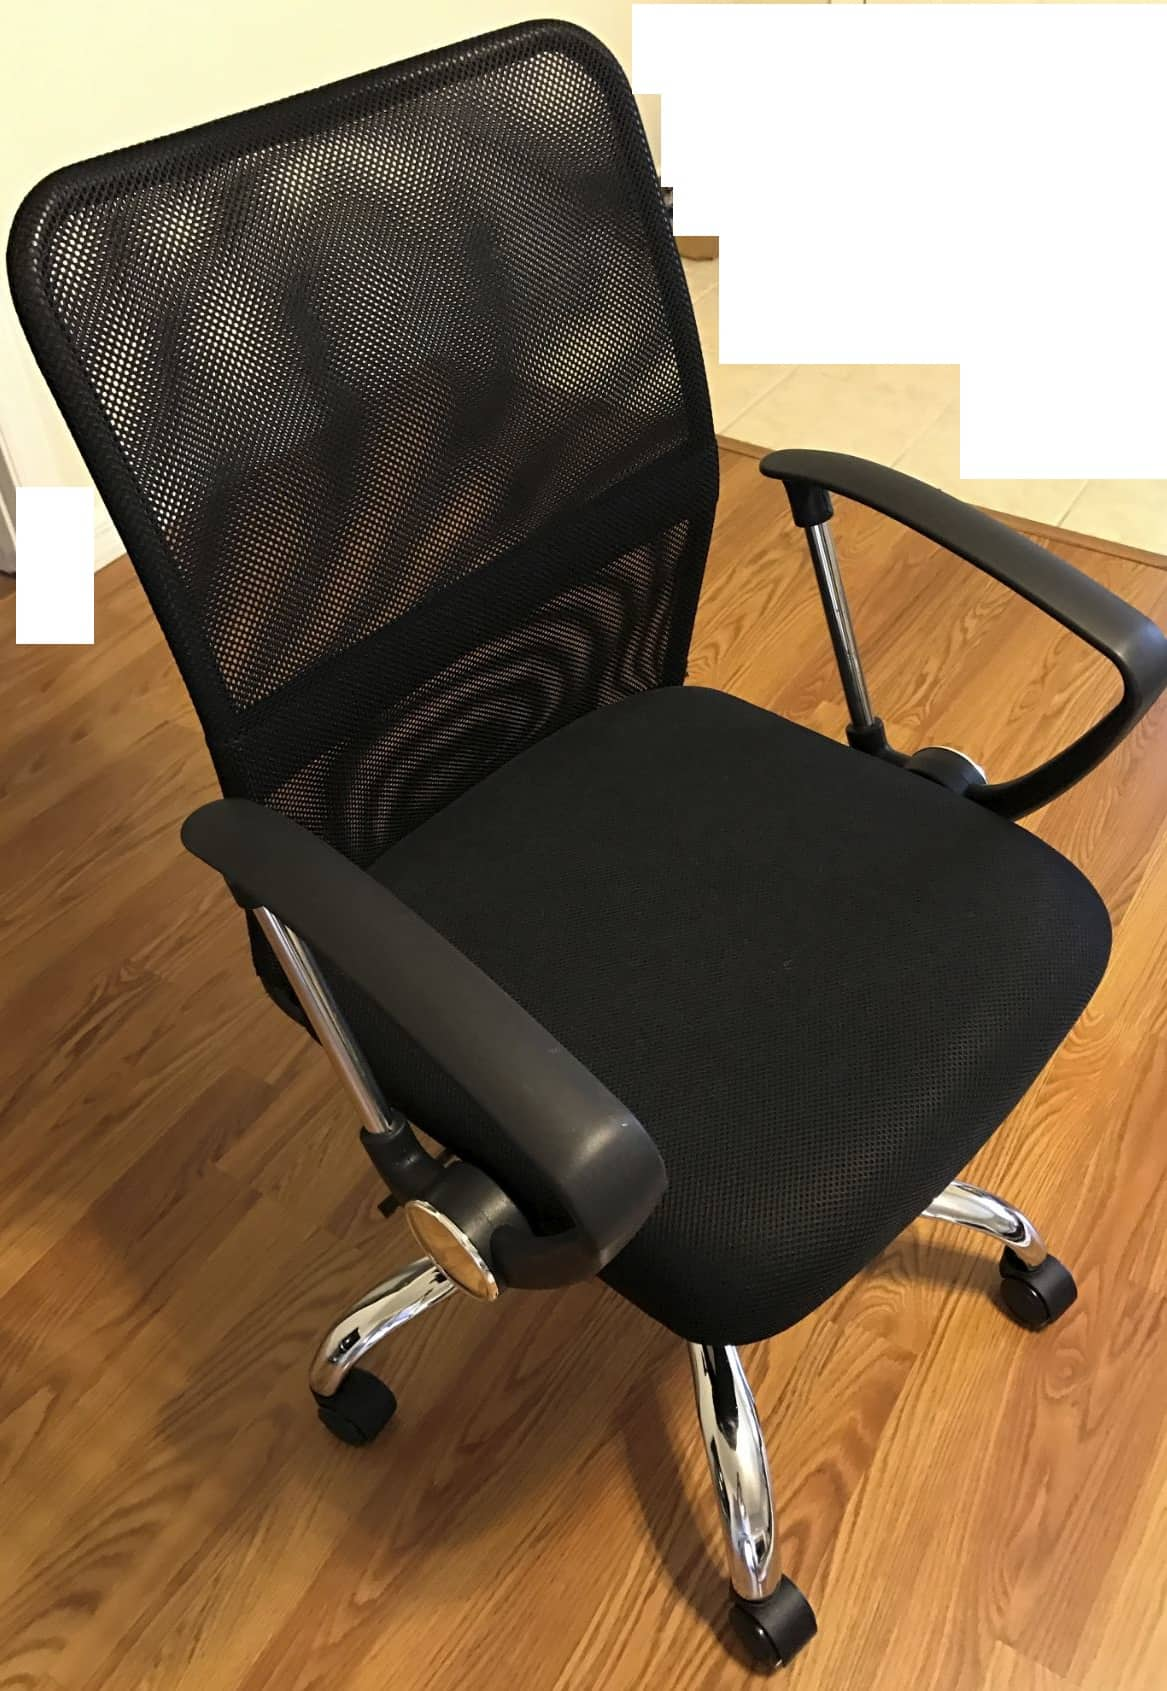 Cute ALDI Sales SOHL Furniture Mesh Office Chair plus tax YMMV and B uM Sales Possibly Slickdeals net